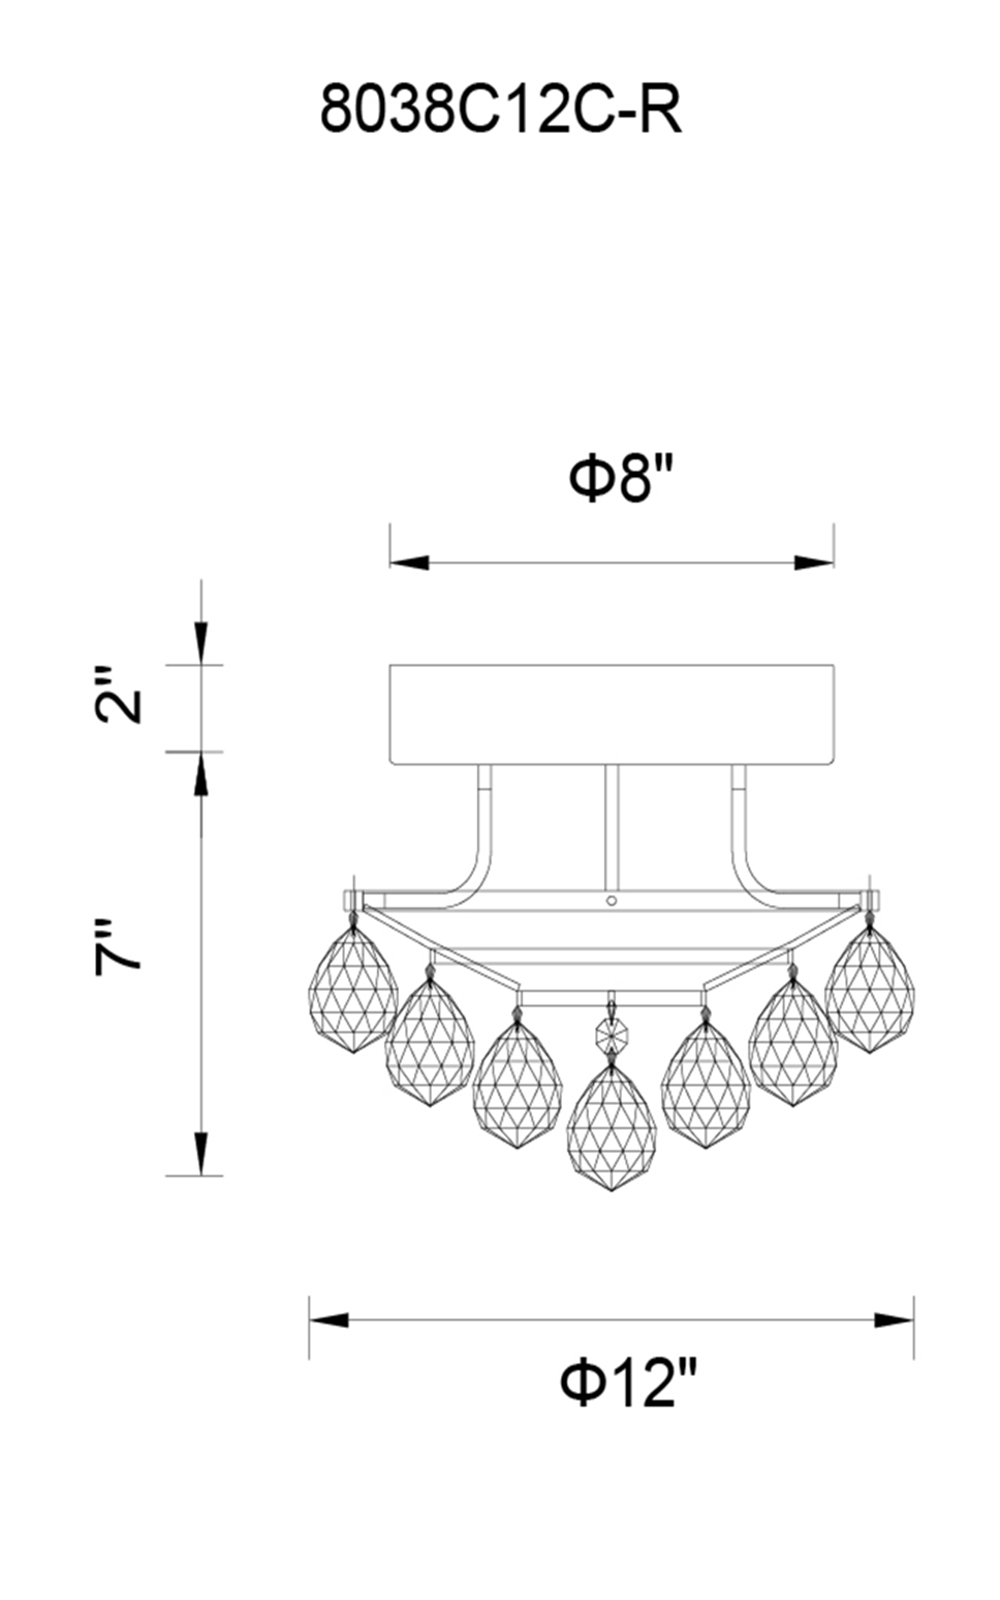 CWI Lighting Queen 3 Light Flush Mount With Chrome Finish Model: 8038C12C-R Line Drawing